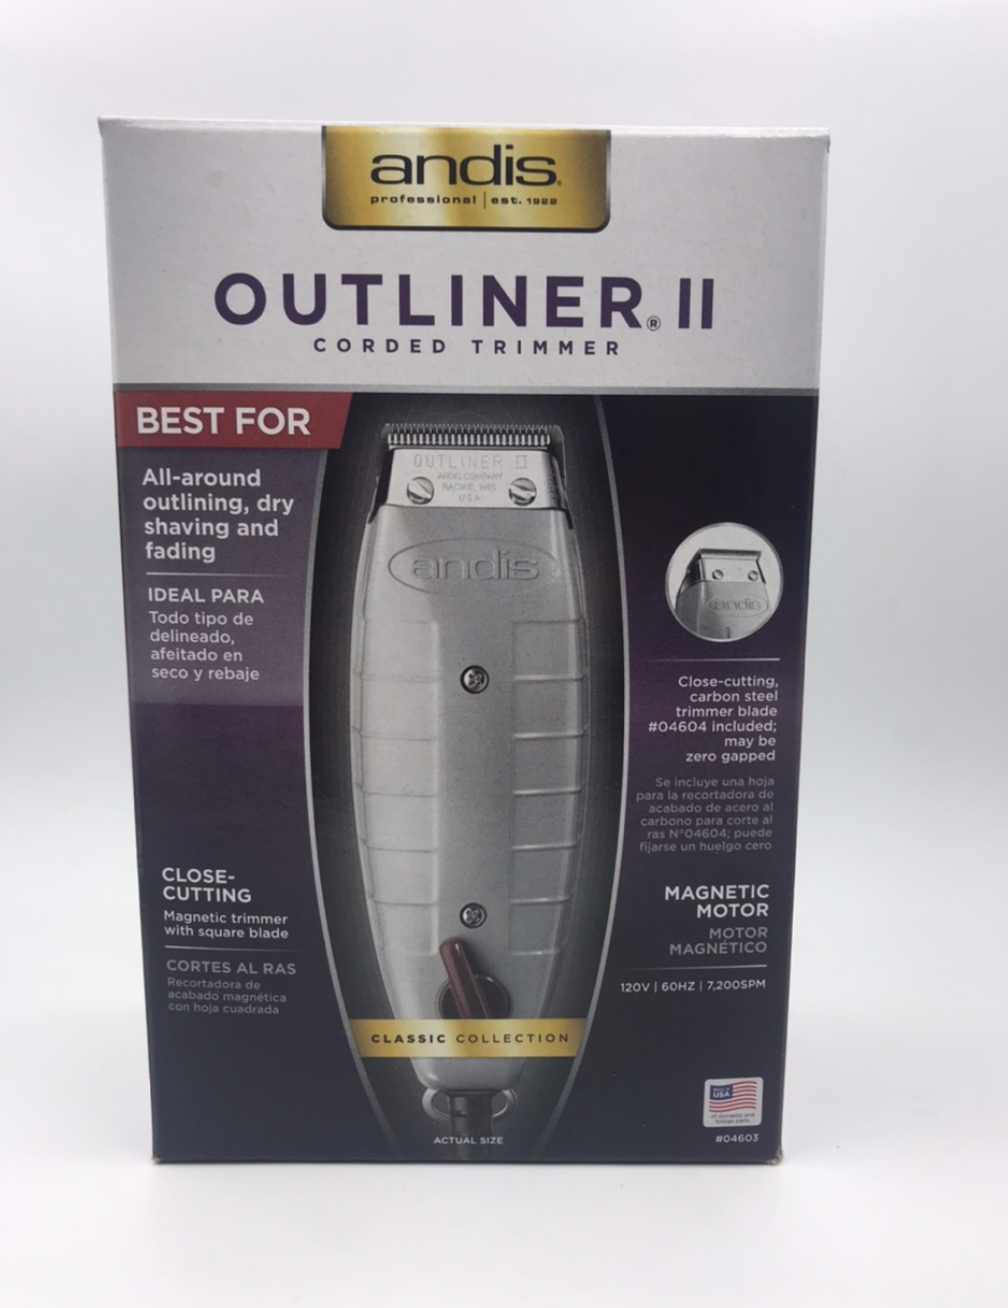 Primary image for ANDIS OUTLINER II CORDED TRIMMER #04603 MADE IN USA BEST FOR DRY SHAVING, FADING